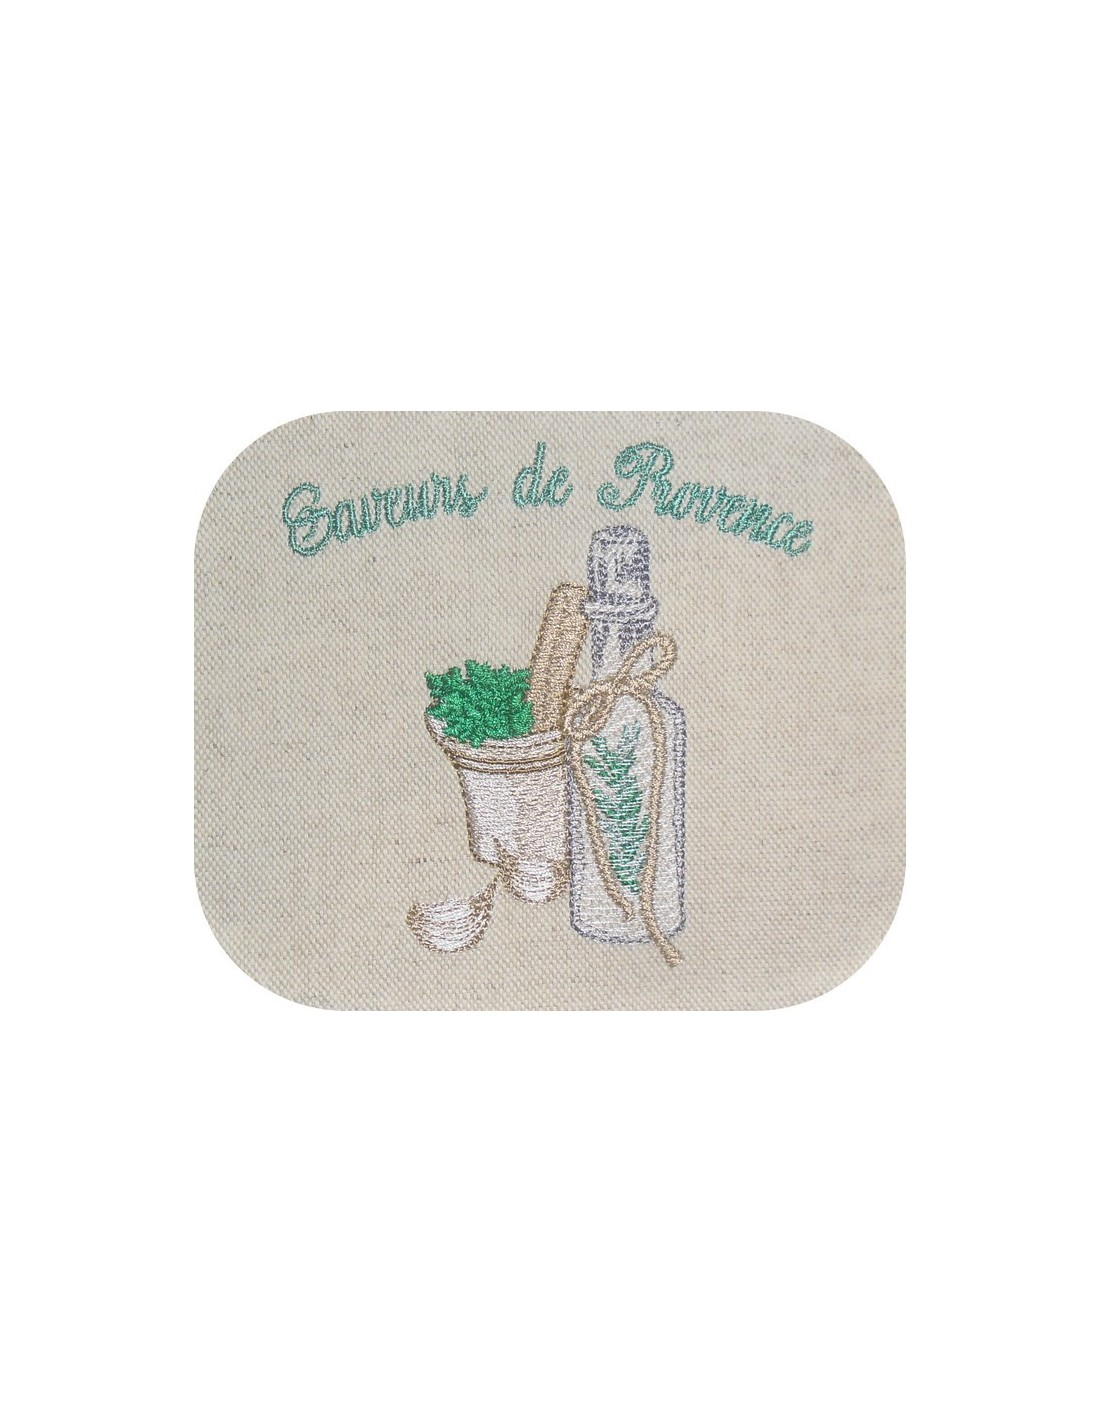 embroidery design olive oil provence